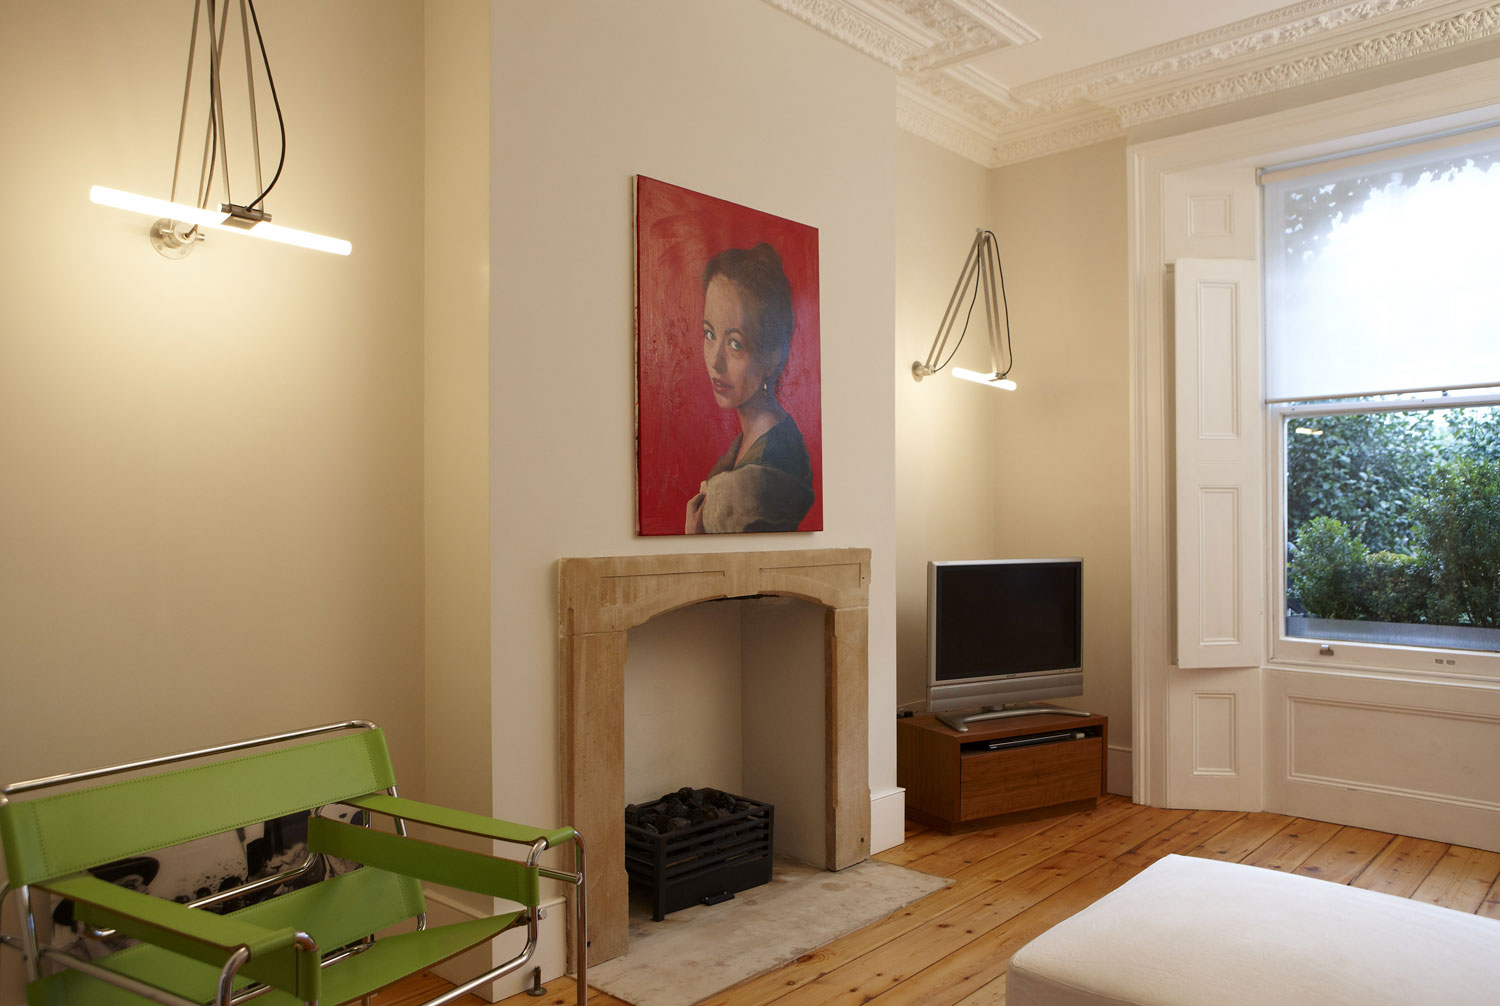 Lounge refurbishment of victorian terrace home on Kings Road, London   Residential Photographer